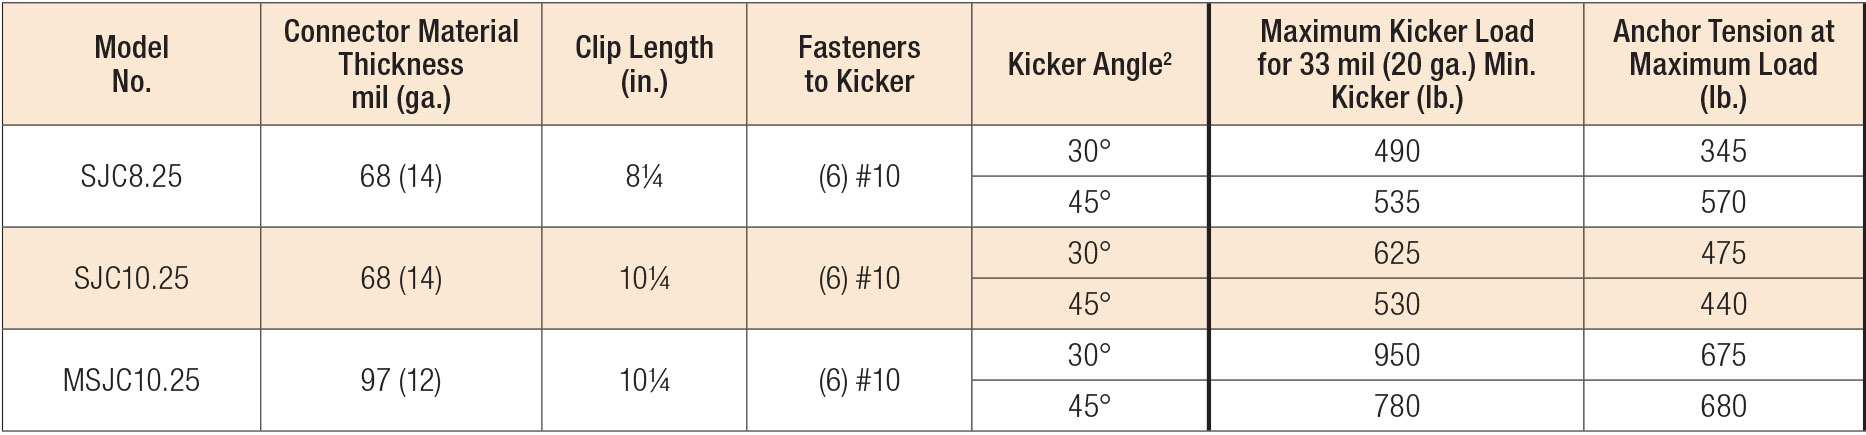 SJC Connectors - Kicker Allowable Loads